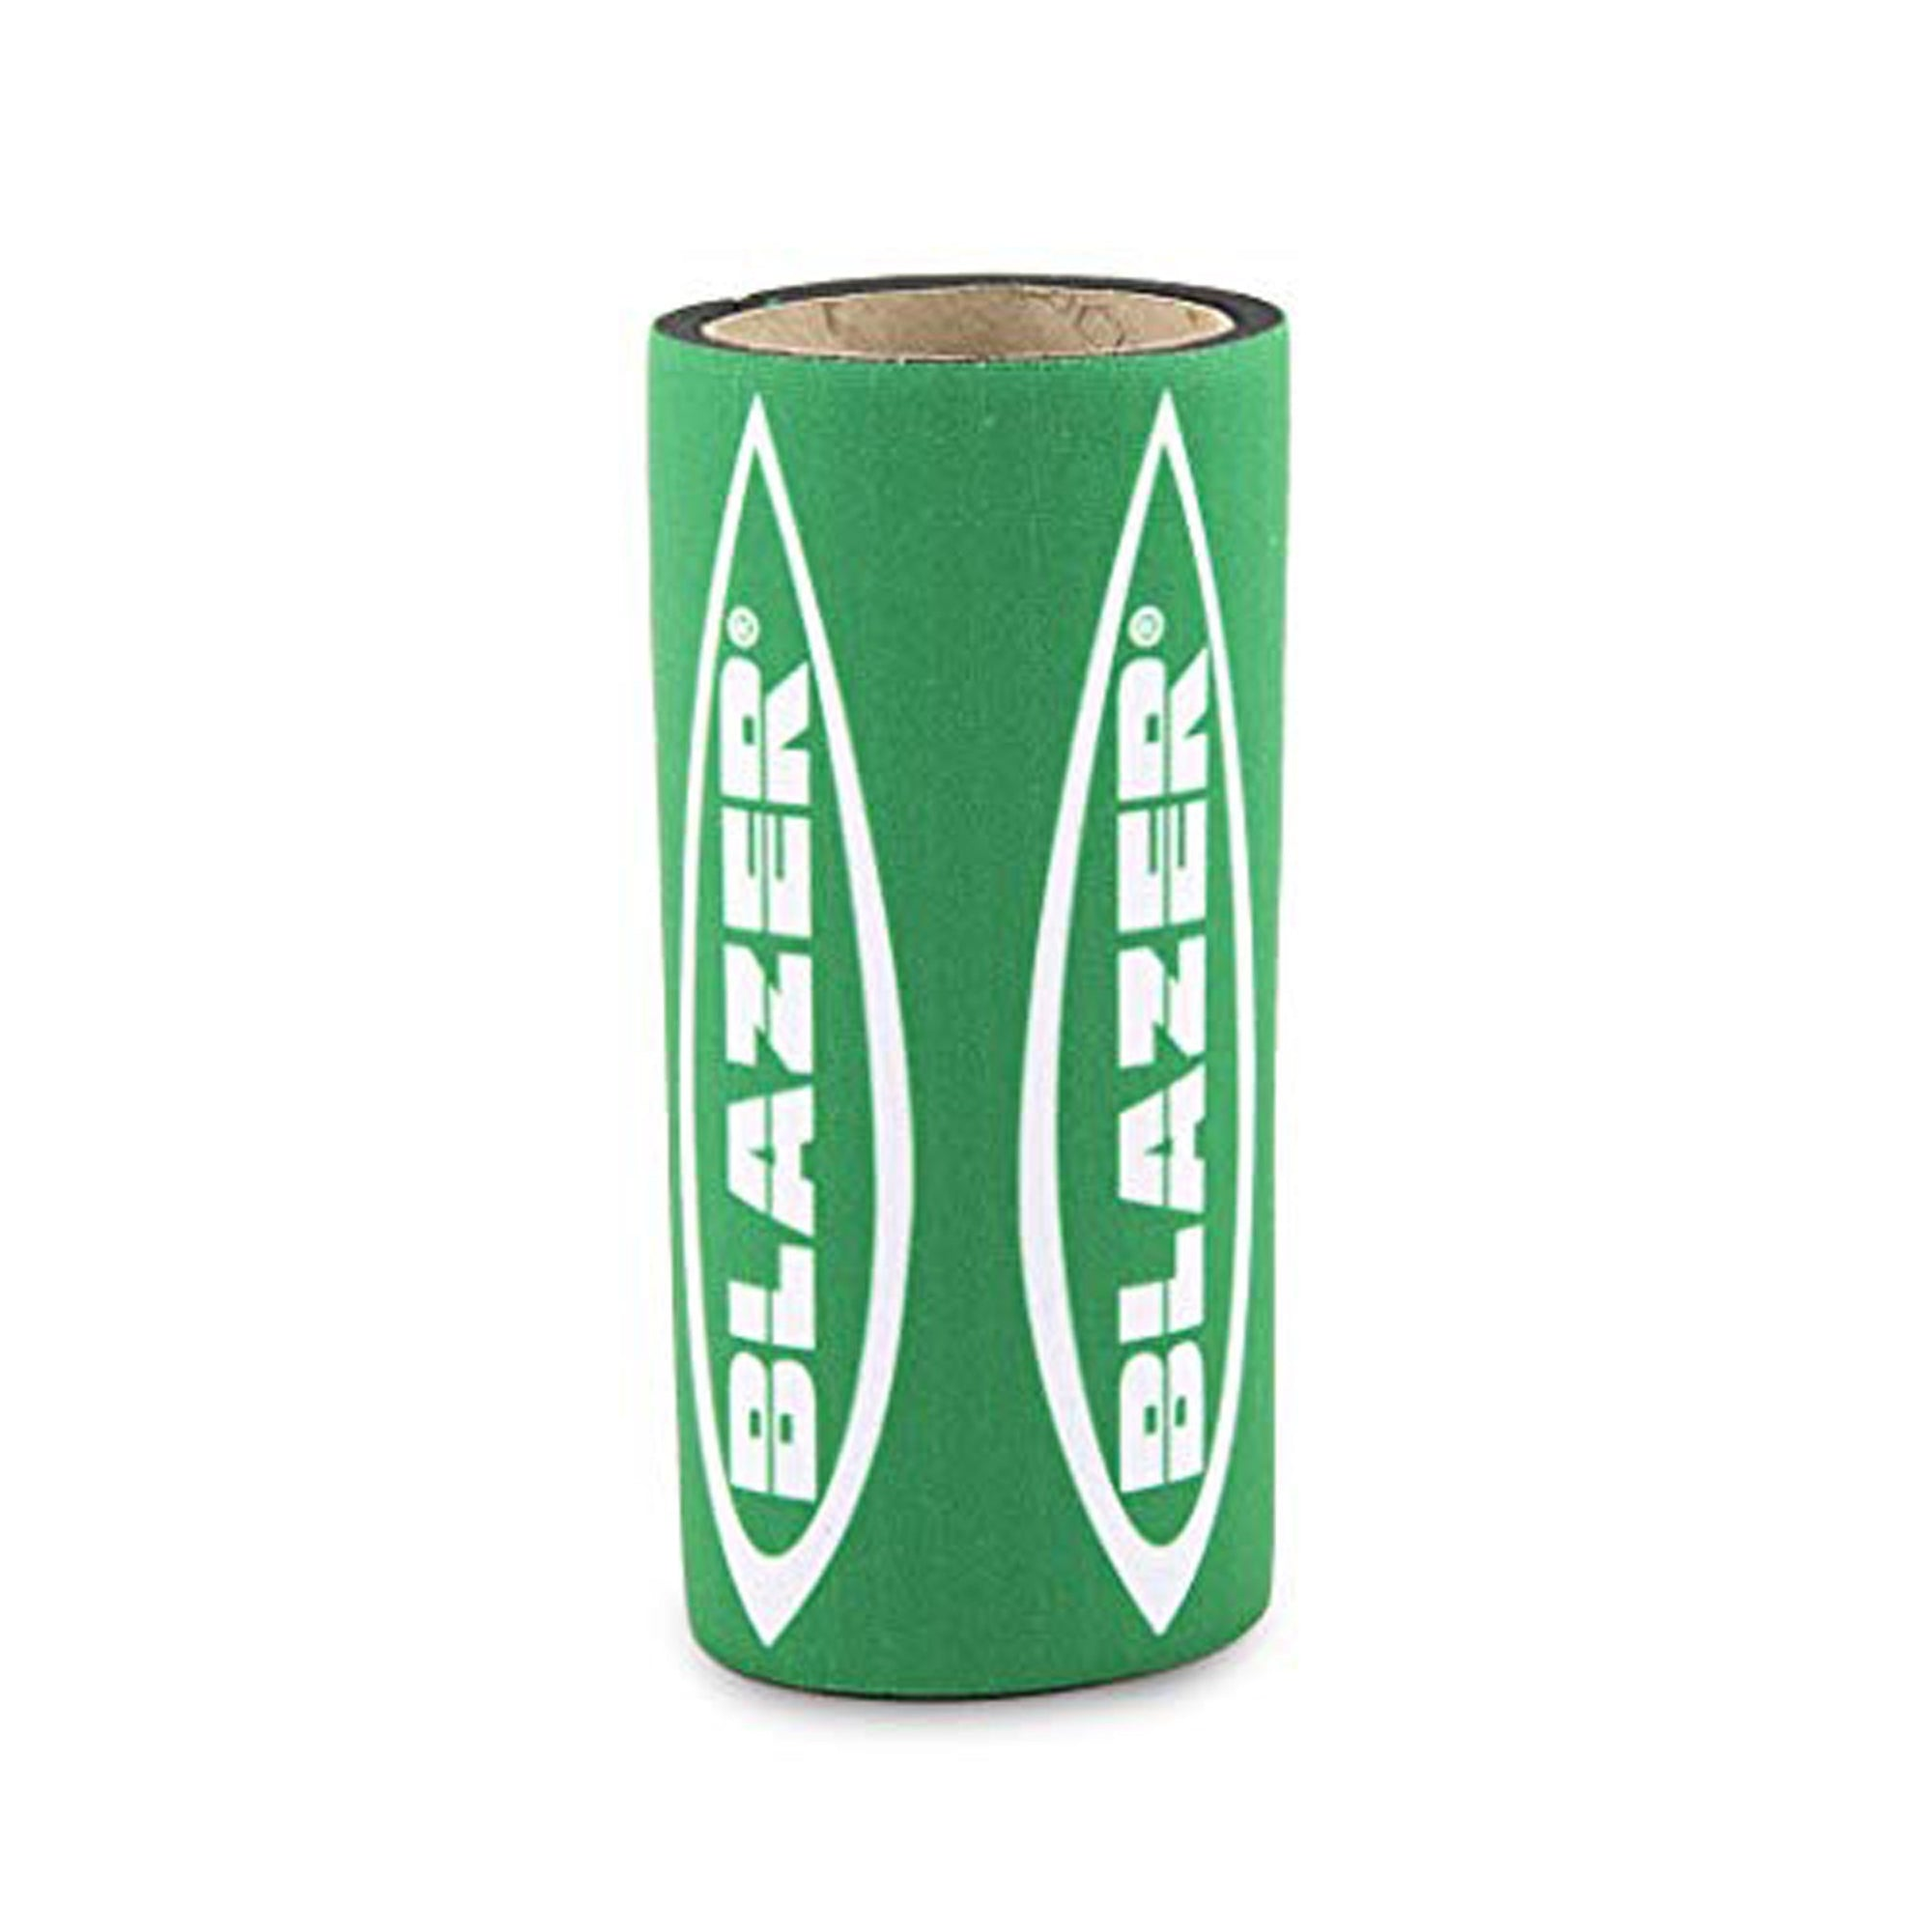 Full upright shot of 4.5 inch Blazer Big Shot Torch Koozie torch not included green packaging opening on top slightly visible